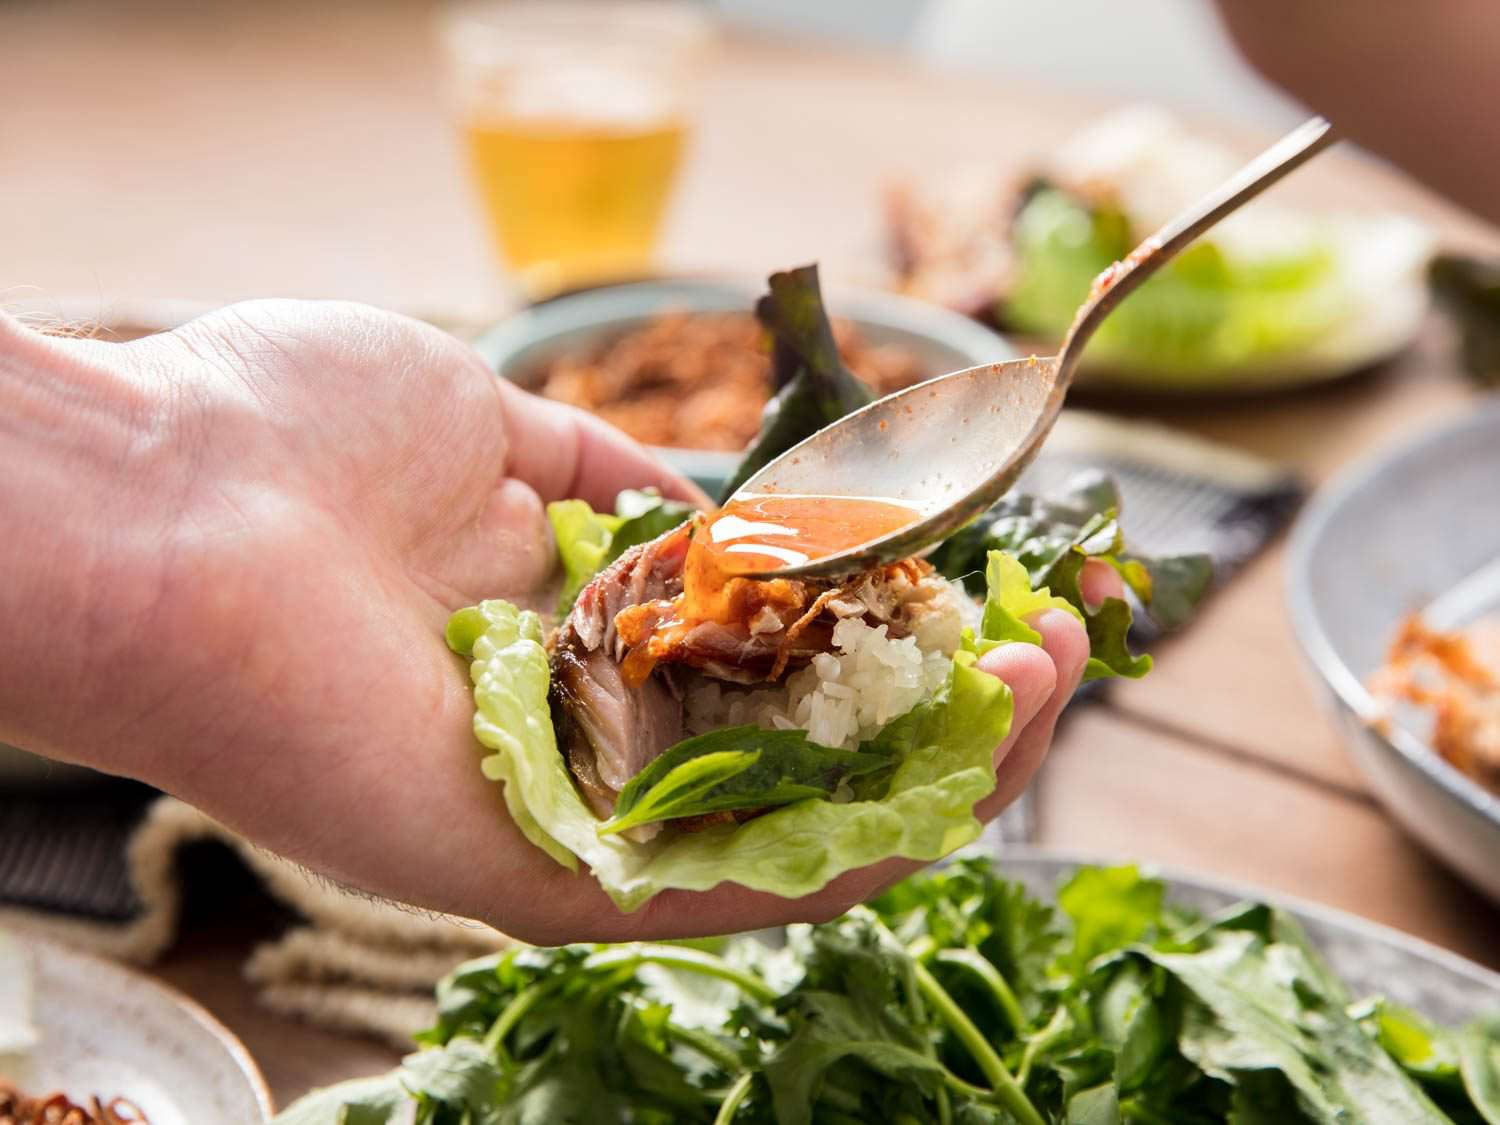 Spooning dipping sauce over a lettuce wrap with pork, sticky rice, and herbs.